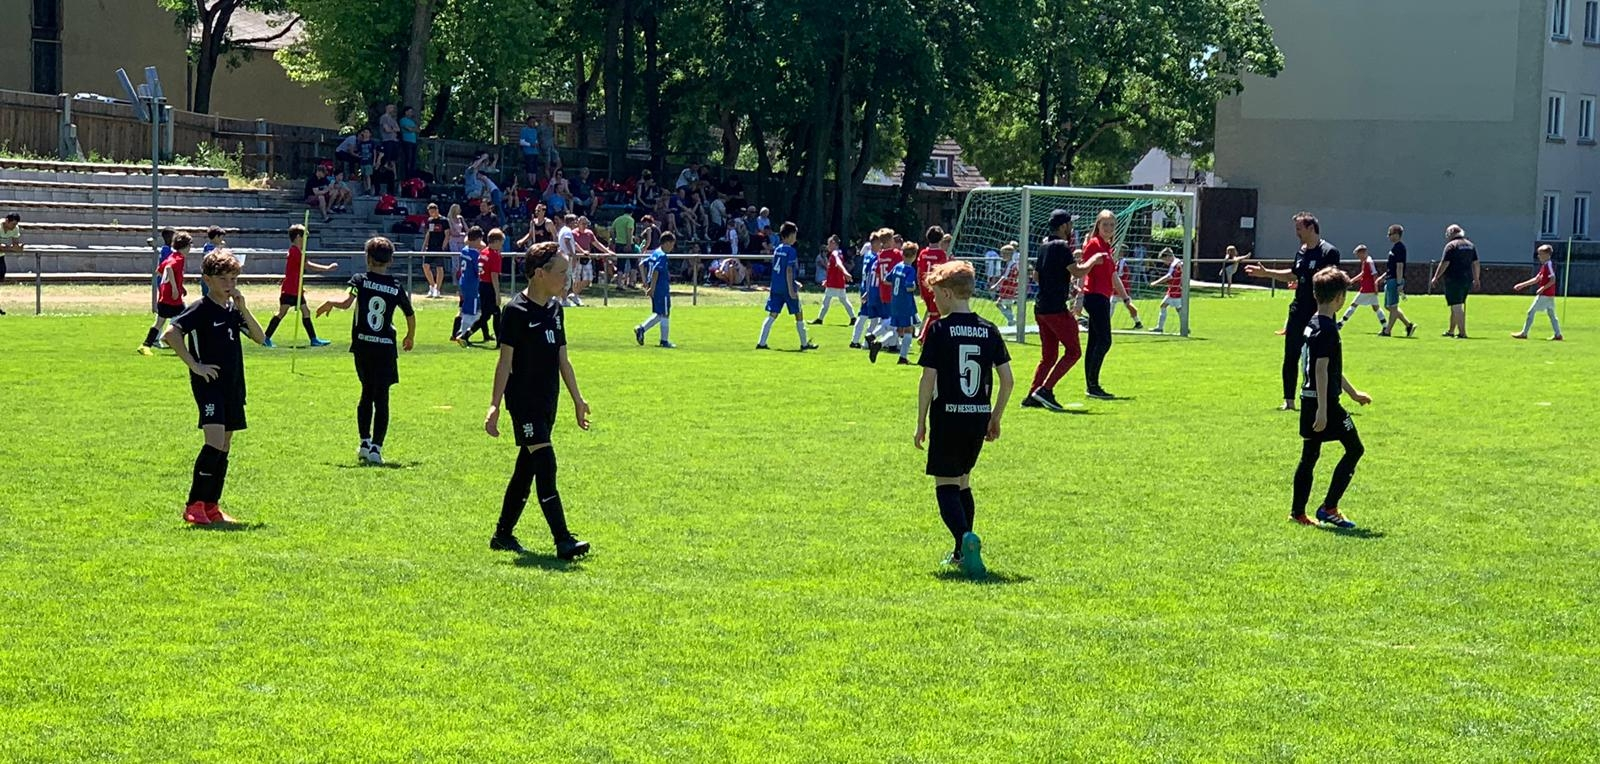 U10 Turnier Germania Wiesbaden